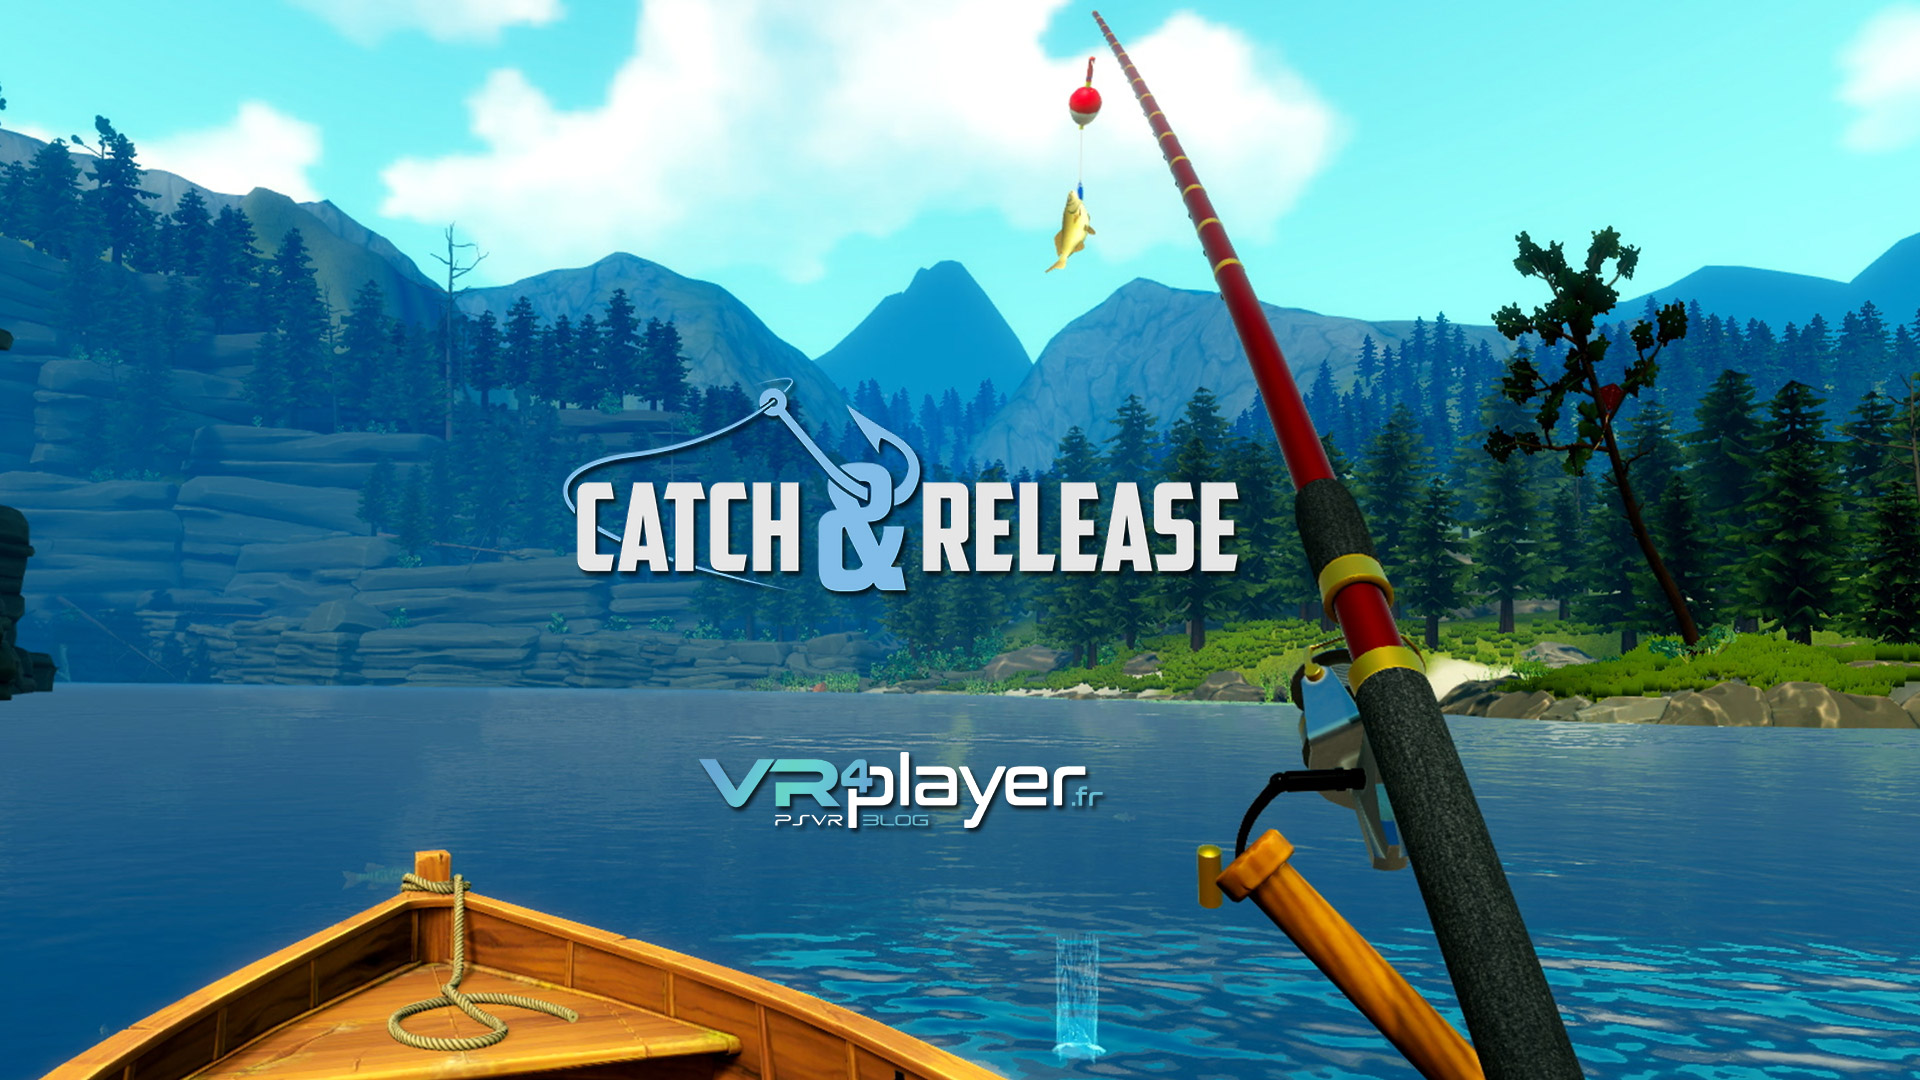 Catch and Release sur PSVR vrplayer.fr